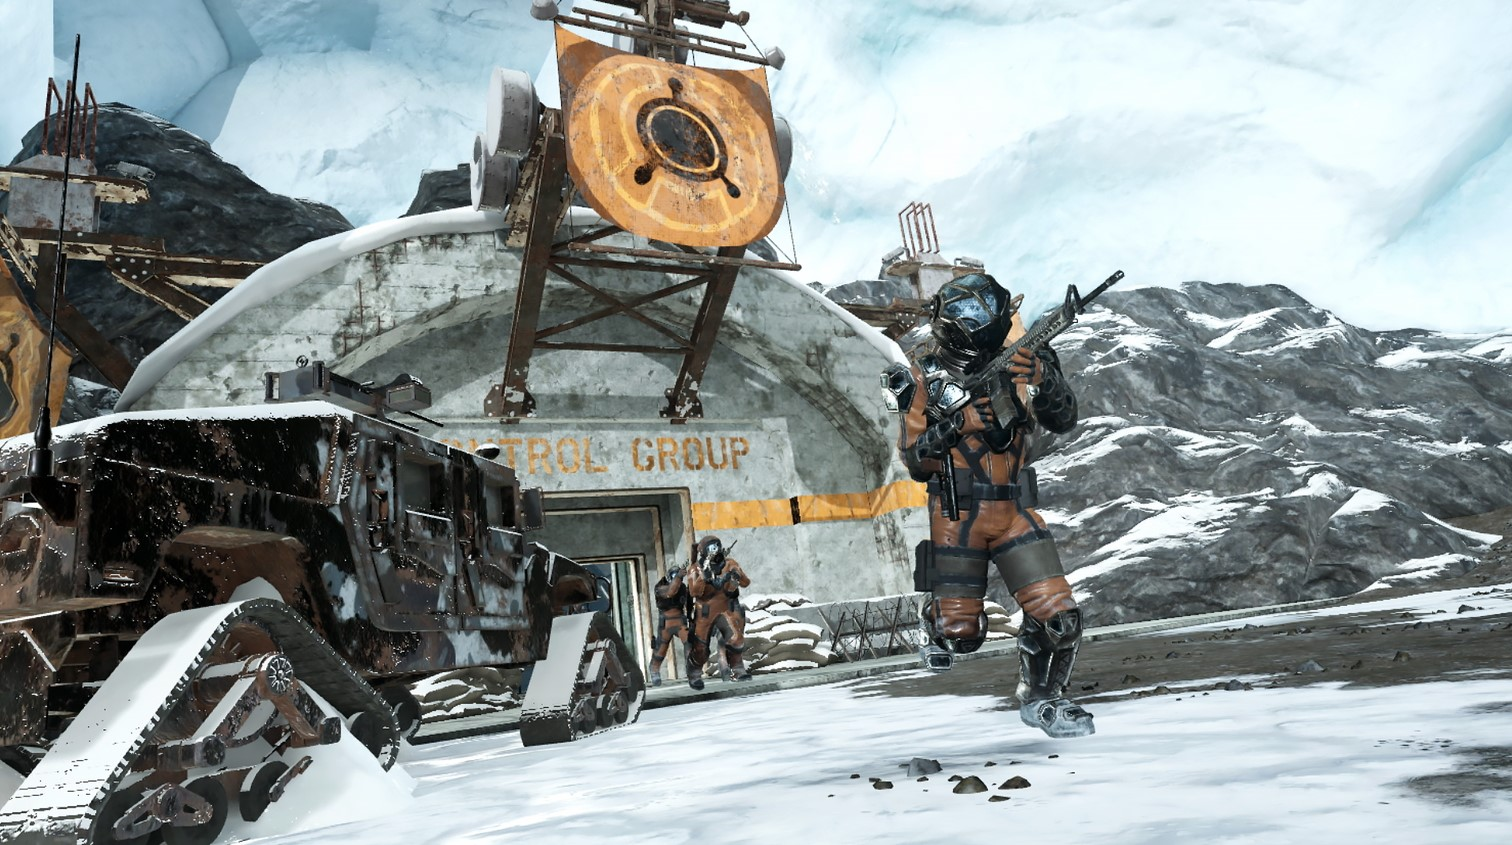 inXile-Entertainment-enters-VR-space-with-Frostpoint-VR-Proving-Grounds-1.jpg